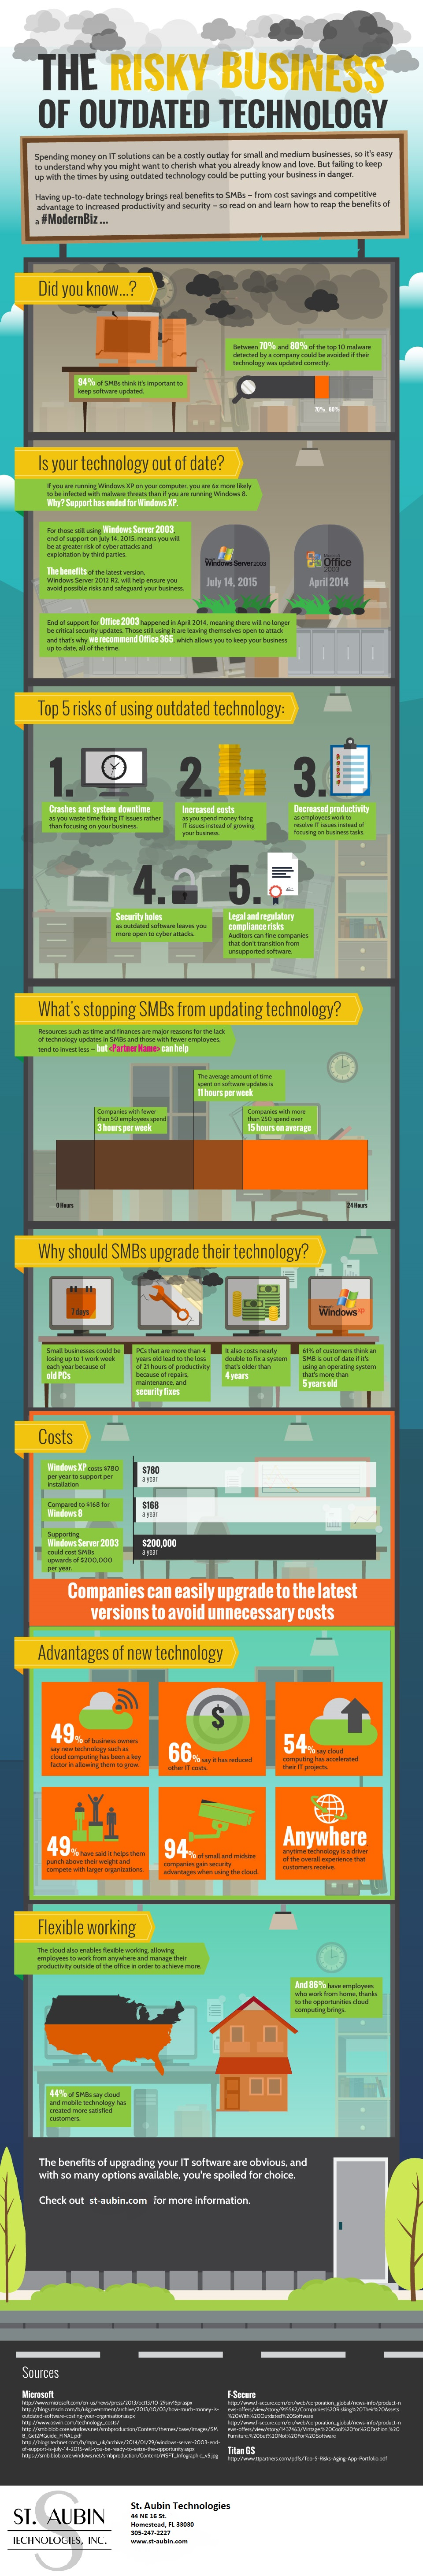 Risky Business of Outdated Technology - Microsoft